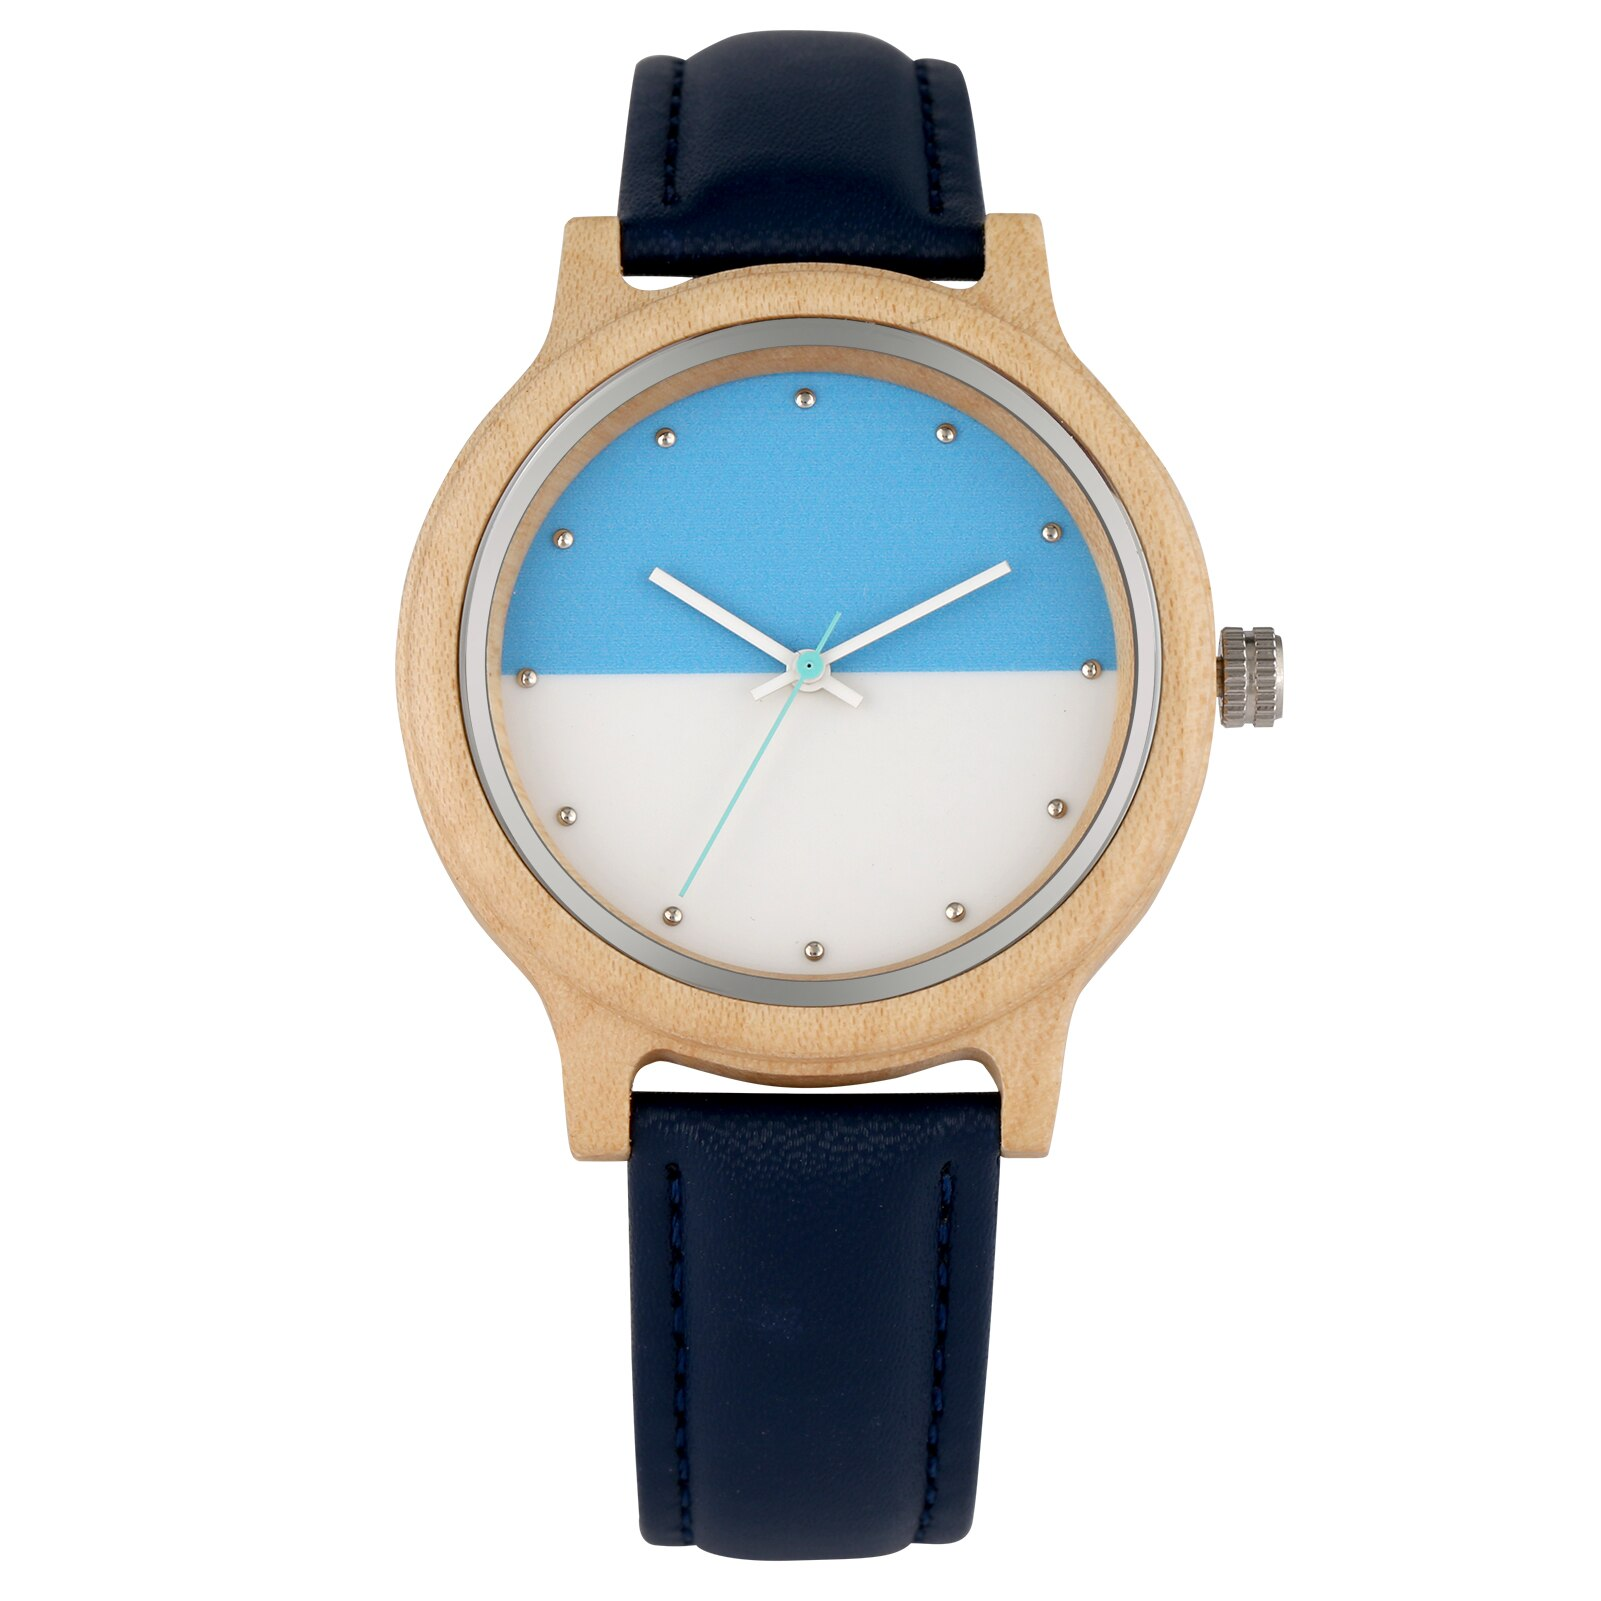 New Fashion Wood Watches Women Men Simple Two-color Ladies Clock Quartz Wooden Wristwatch Leather Strap Female Watch Reloj Mujer enlarge